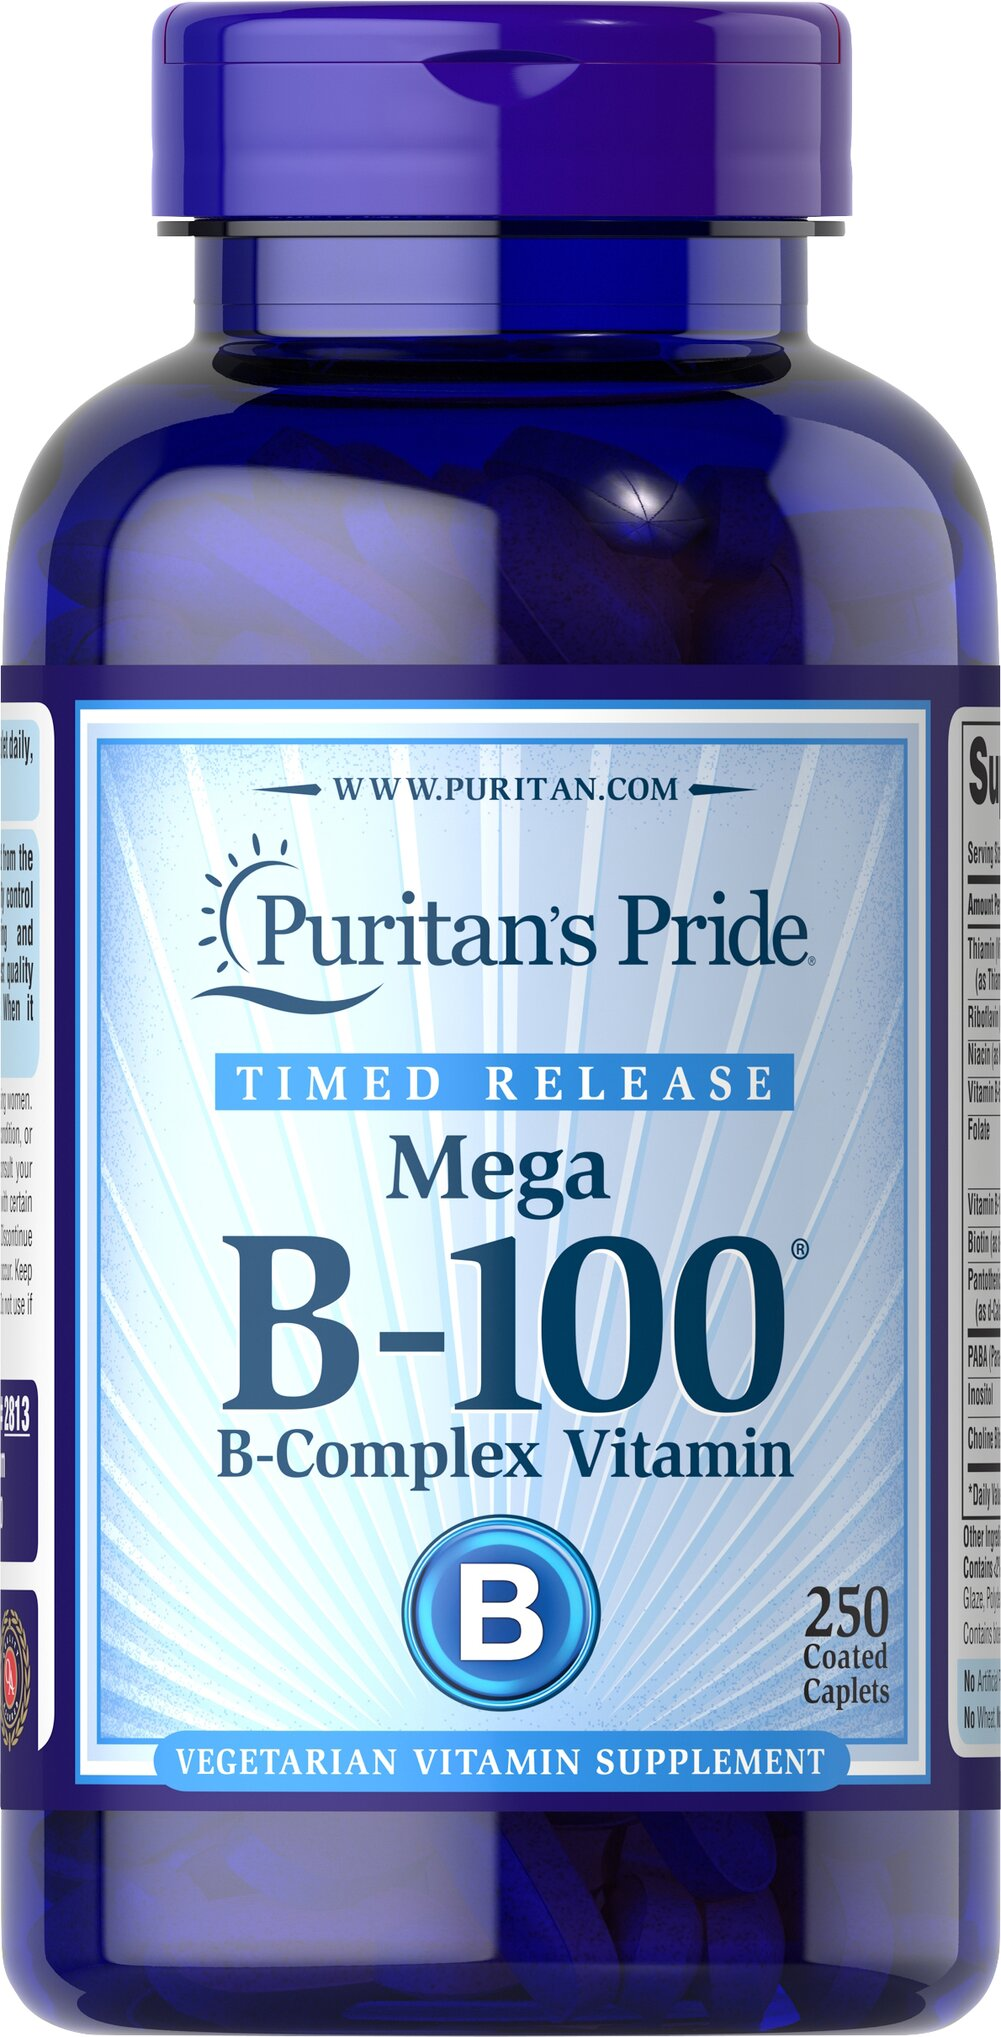 Vitamin B-100® Complex Timed Release Thumbnail Alternate Bottle View